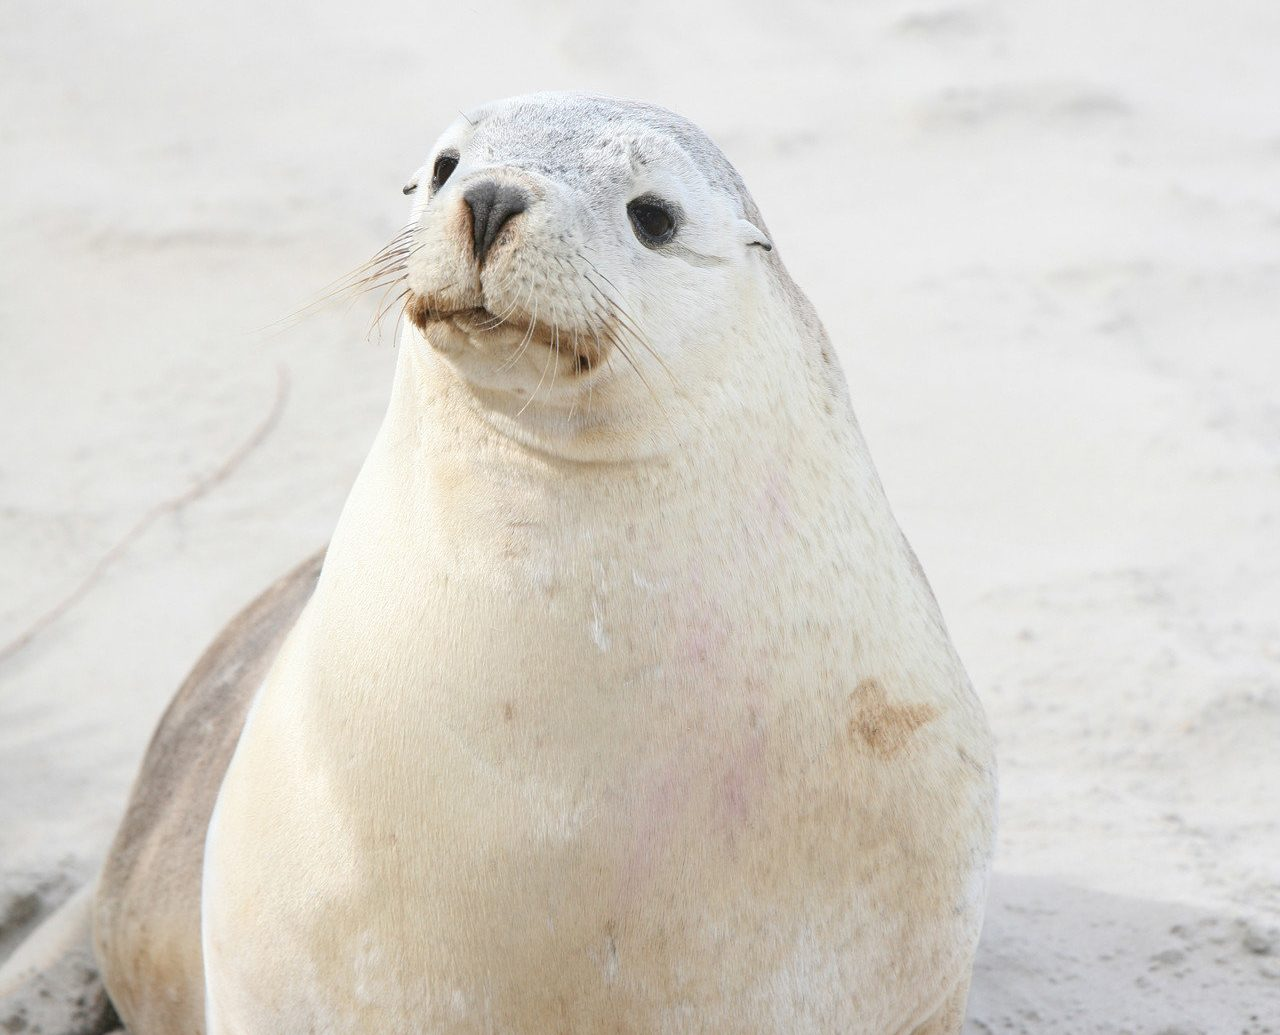 Hotels animal aquatic mammal seal mammal harbor seal ground seals outdoor vertebrate marine mammal fauna Wildlife laying sand sandy